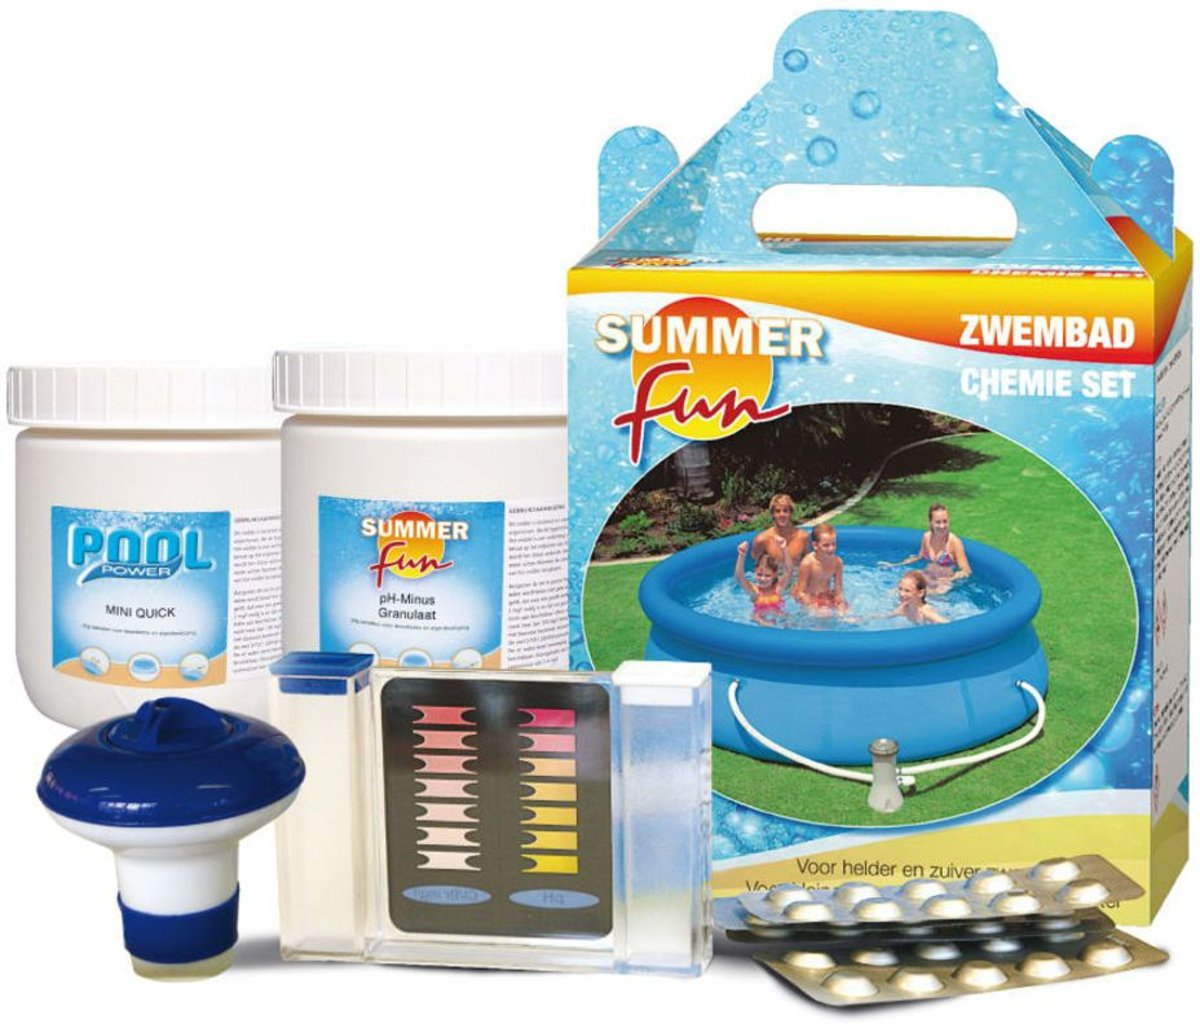 Ph 8.2 Zwembad Startset Chemie Summer Fun